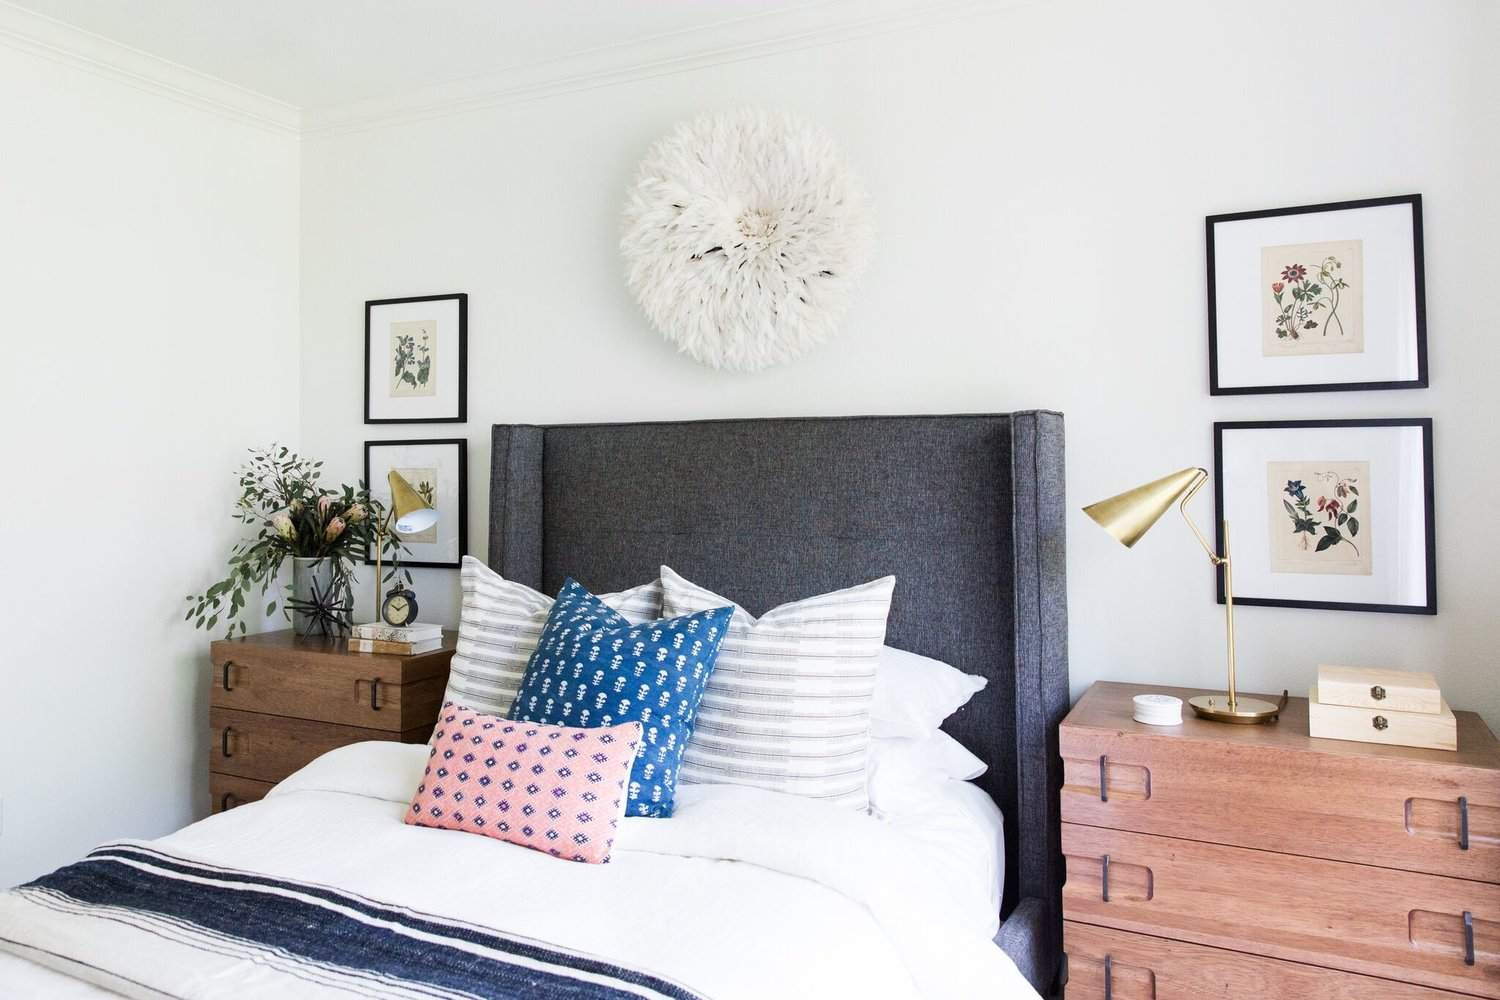 22 Stylish Bedrooms With Chic Upholstered Headboards